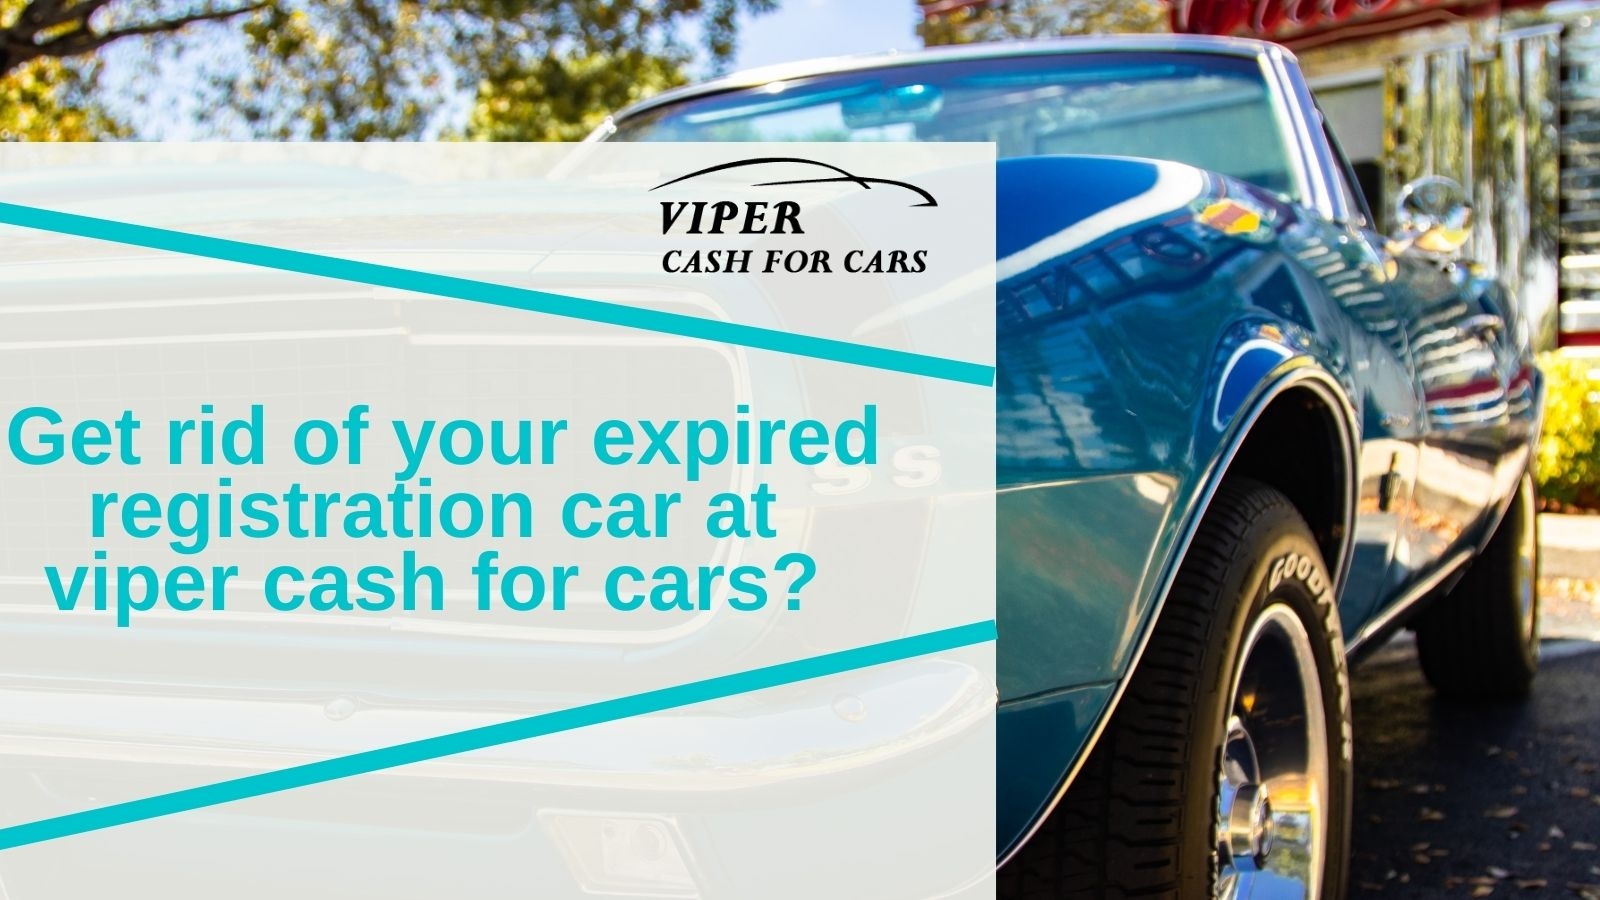 How to get rid of your expired registration car at viper cash for cars?